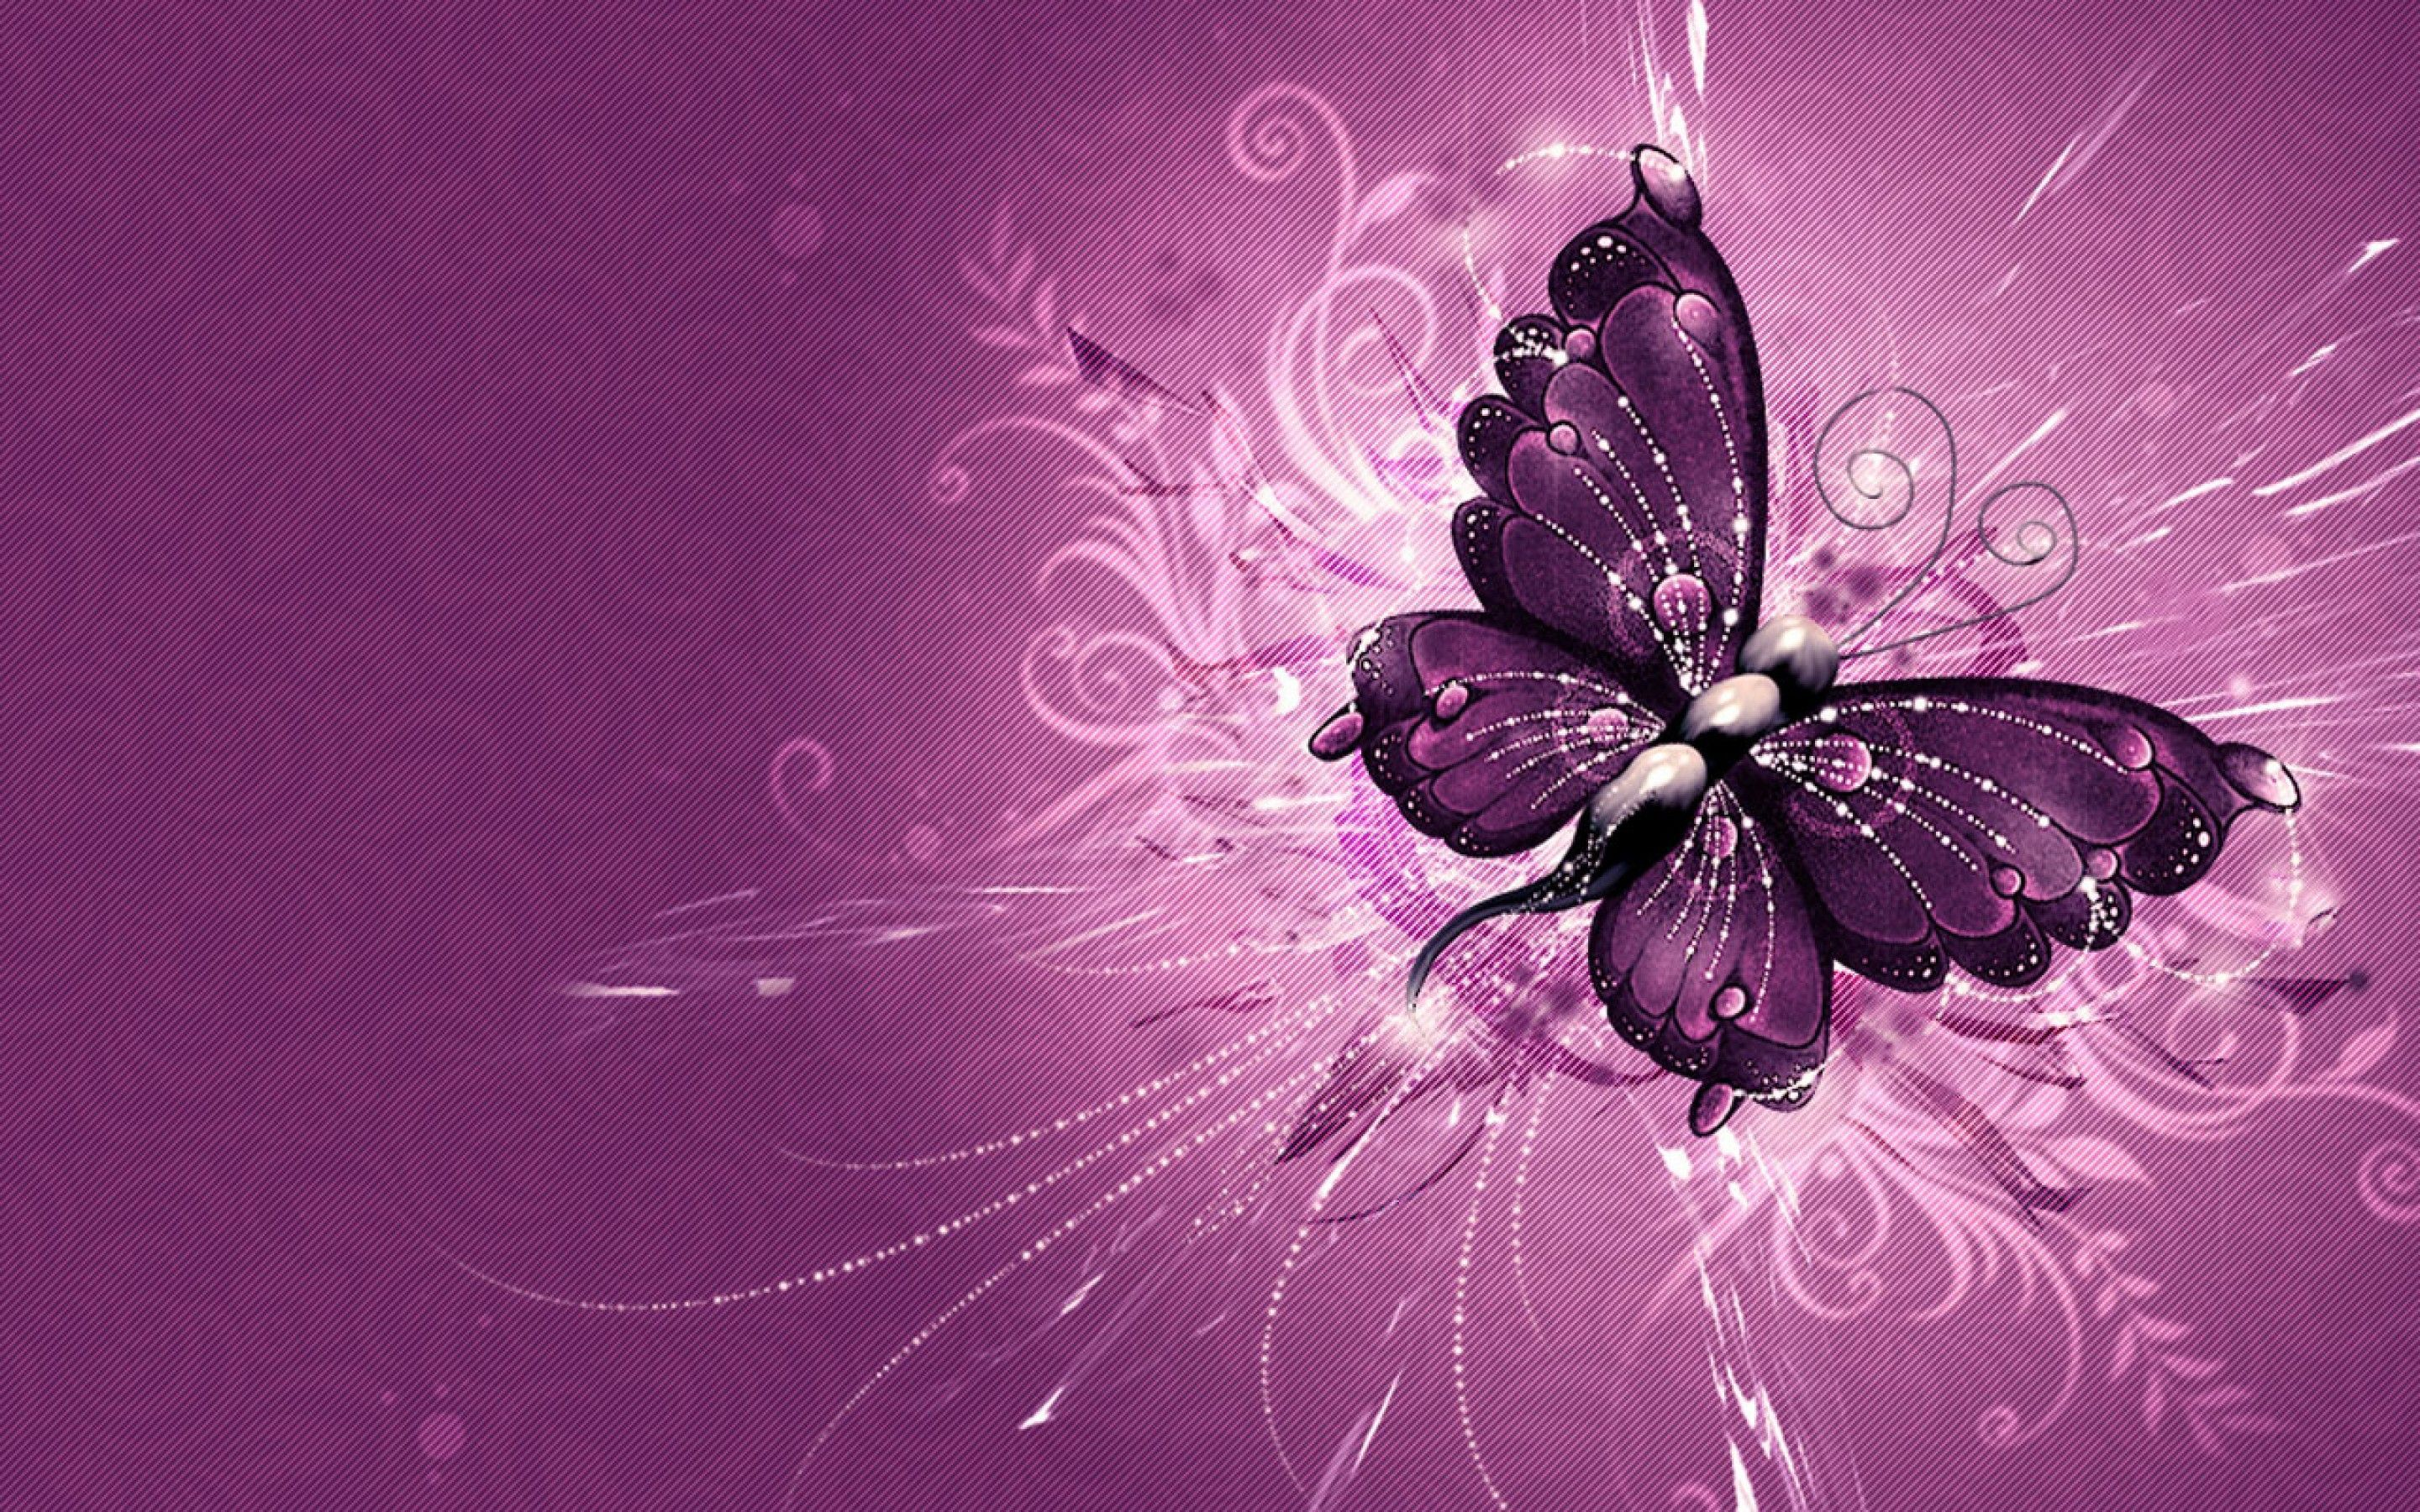 2880x1800 hot pink and black butterfly wallpaper - Google Search | Wallpaper ...